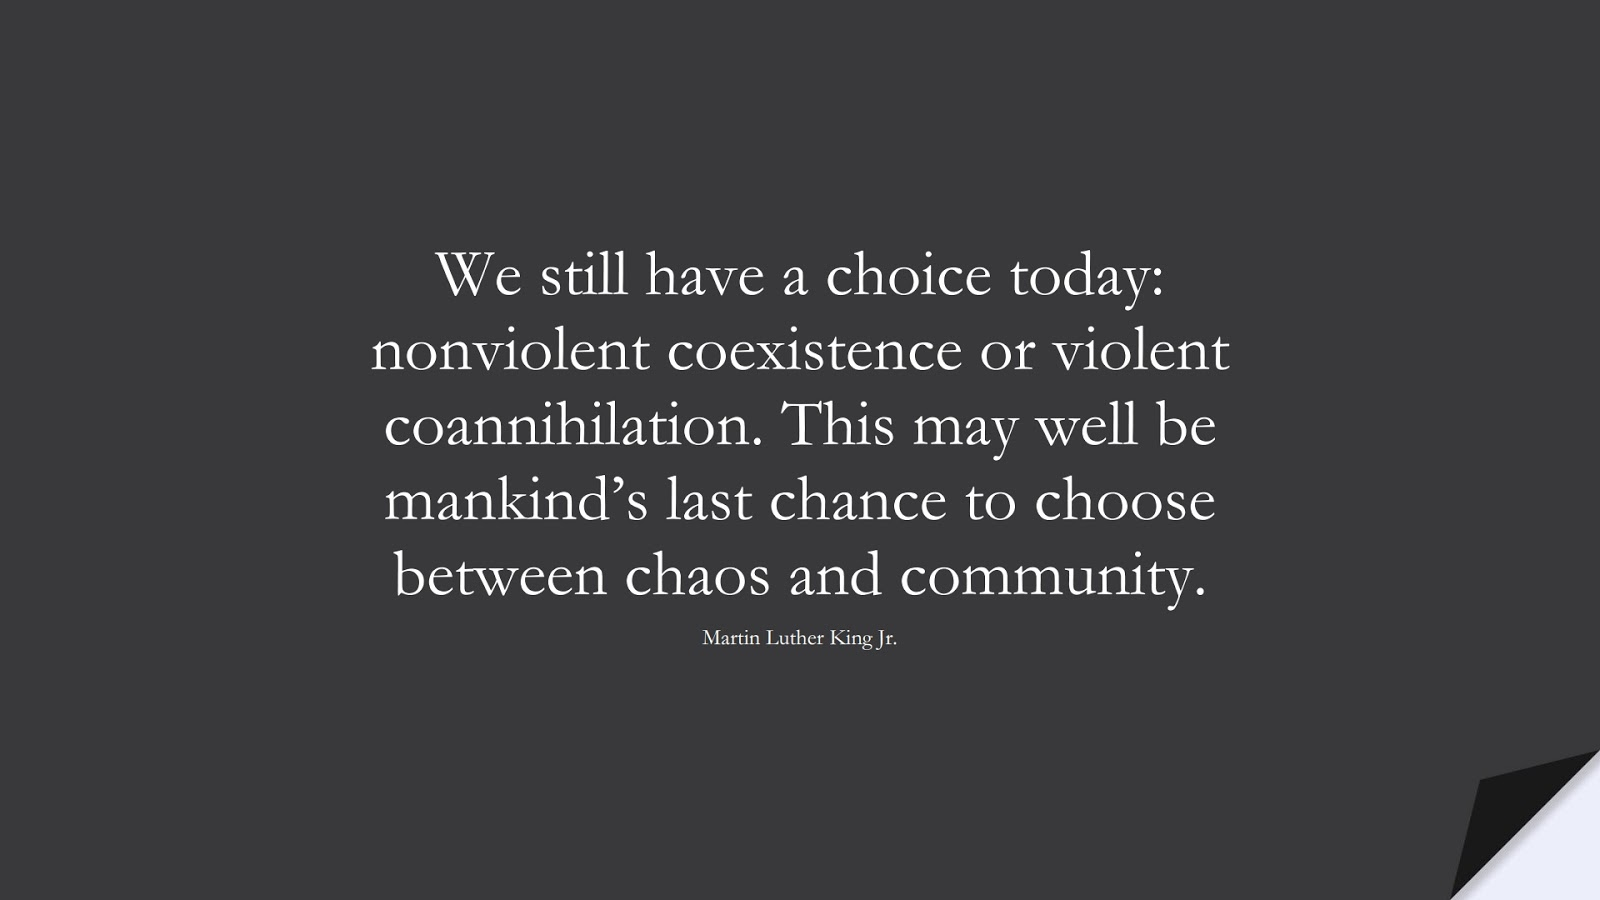 We still have a choice today: nonviolent coexistence or violent coannihilation. This may well be mankind's last chance to choose between chaos and community. (Martin Luther King Jr.);  #MartinLutherKingJrQuotes